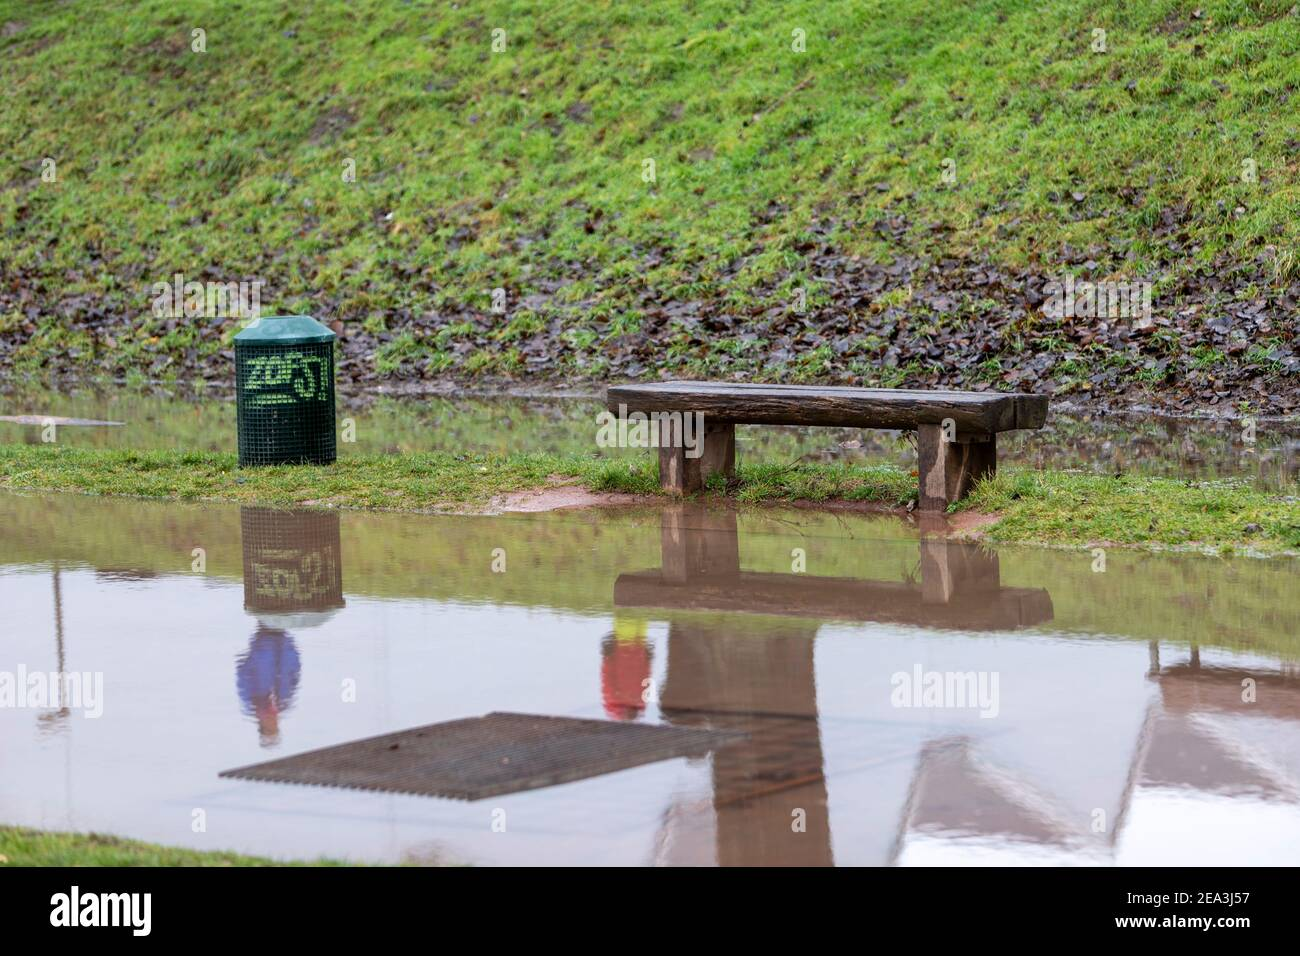 wooden bench in flooded grassland, dustbin nearby and reflection of people in water Stock Photo